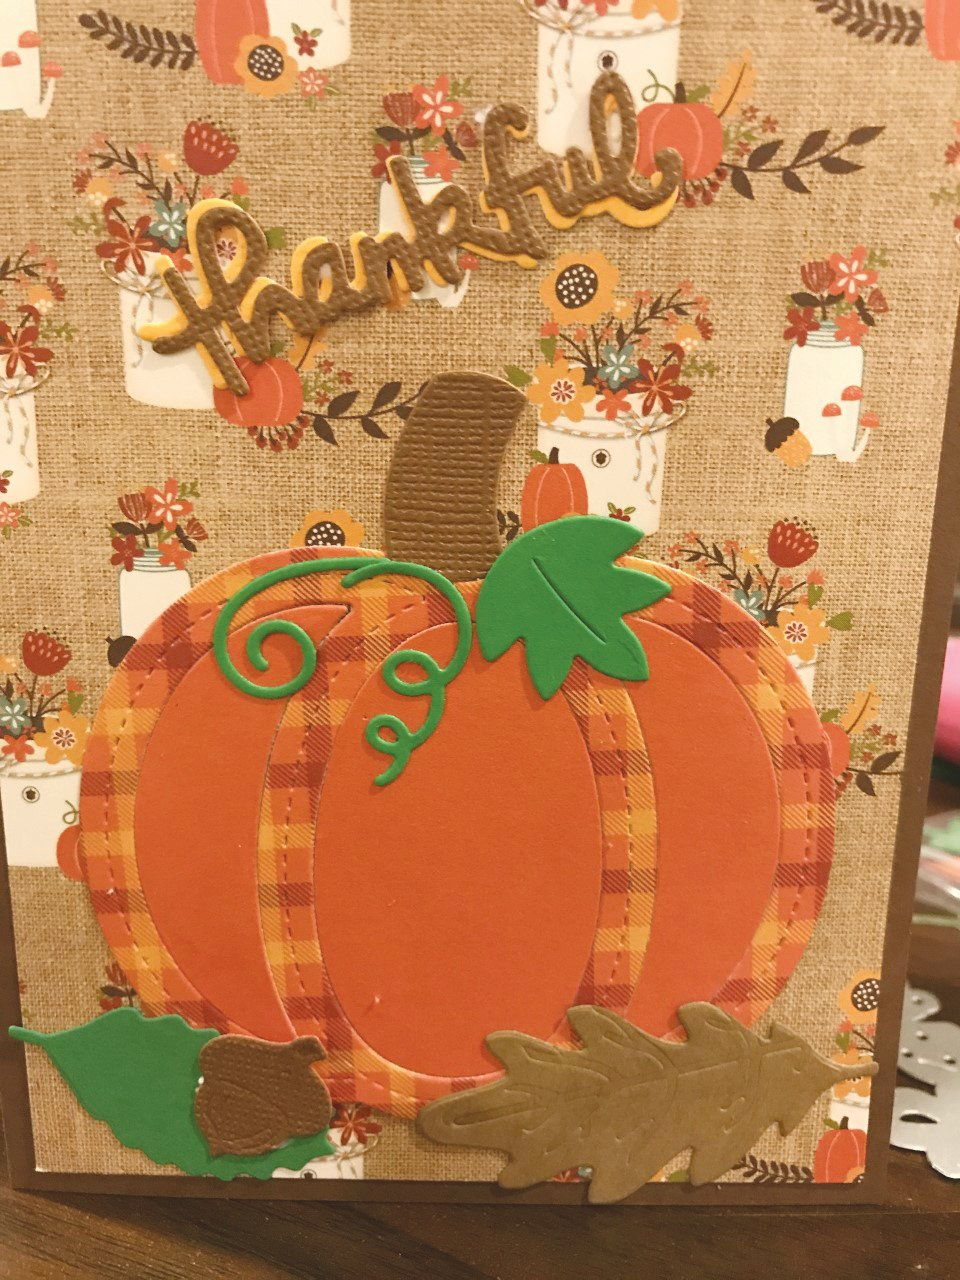 This is a Thanksgiving card made by a club member. [Submitted photo]